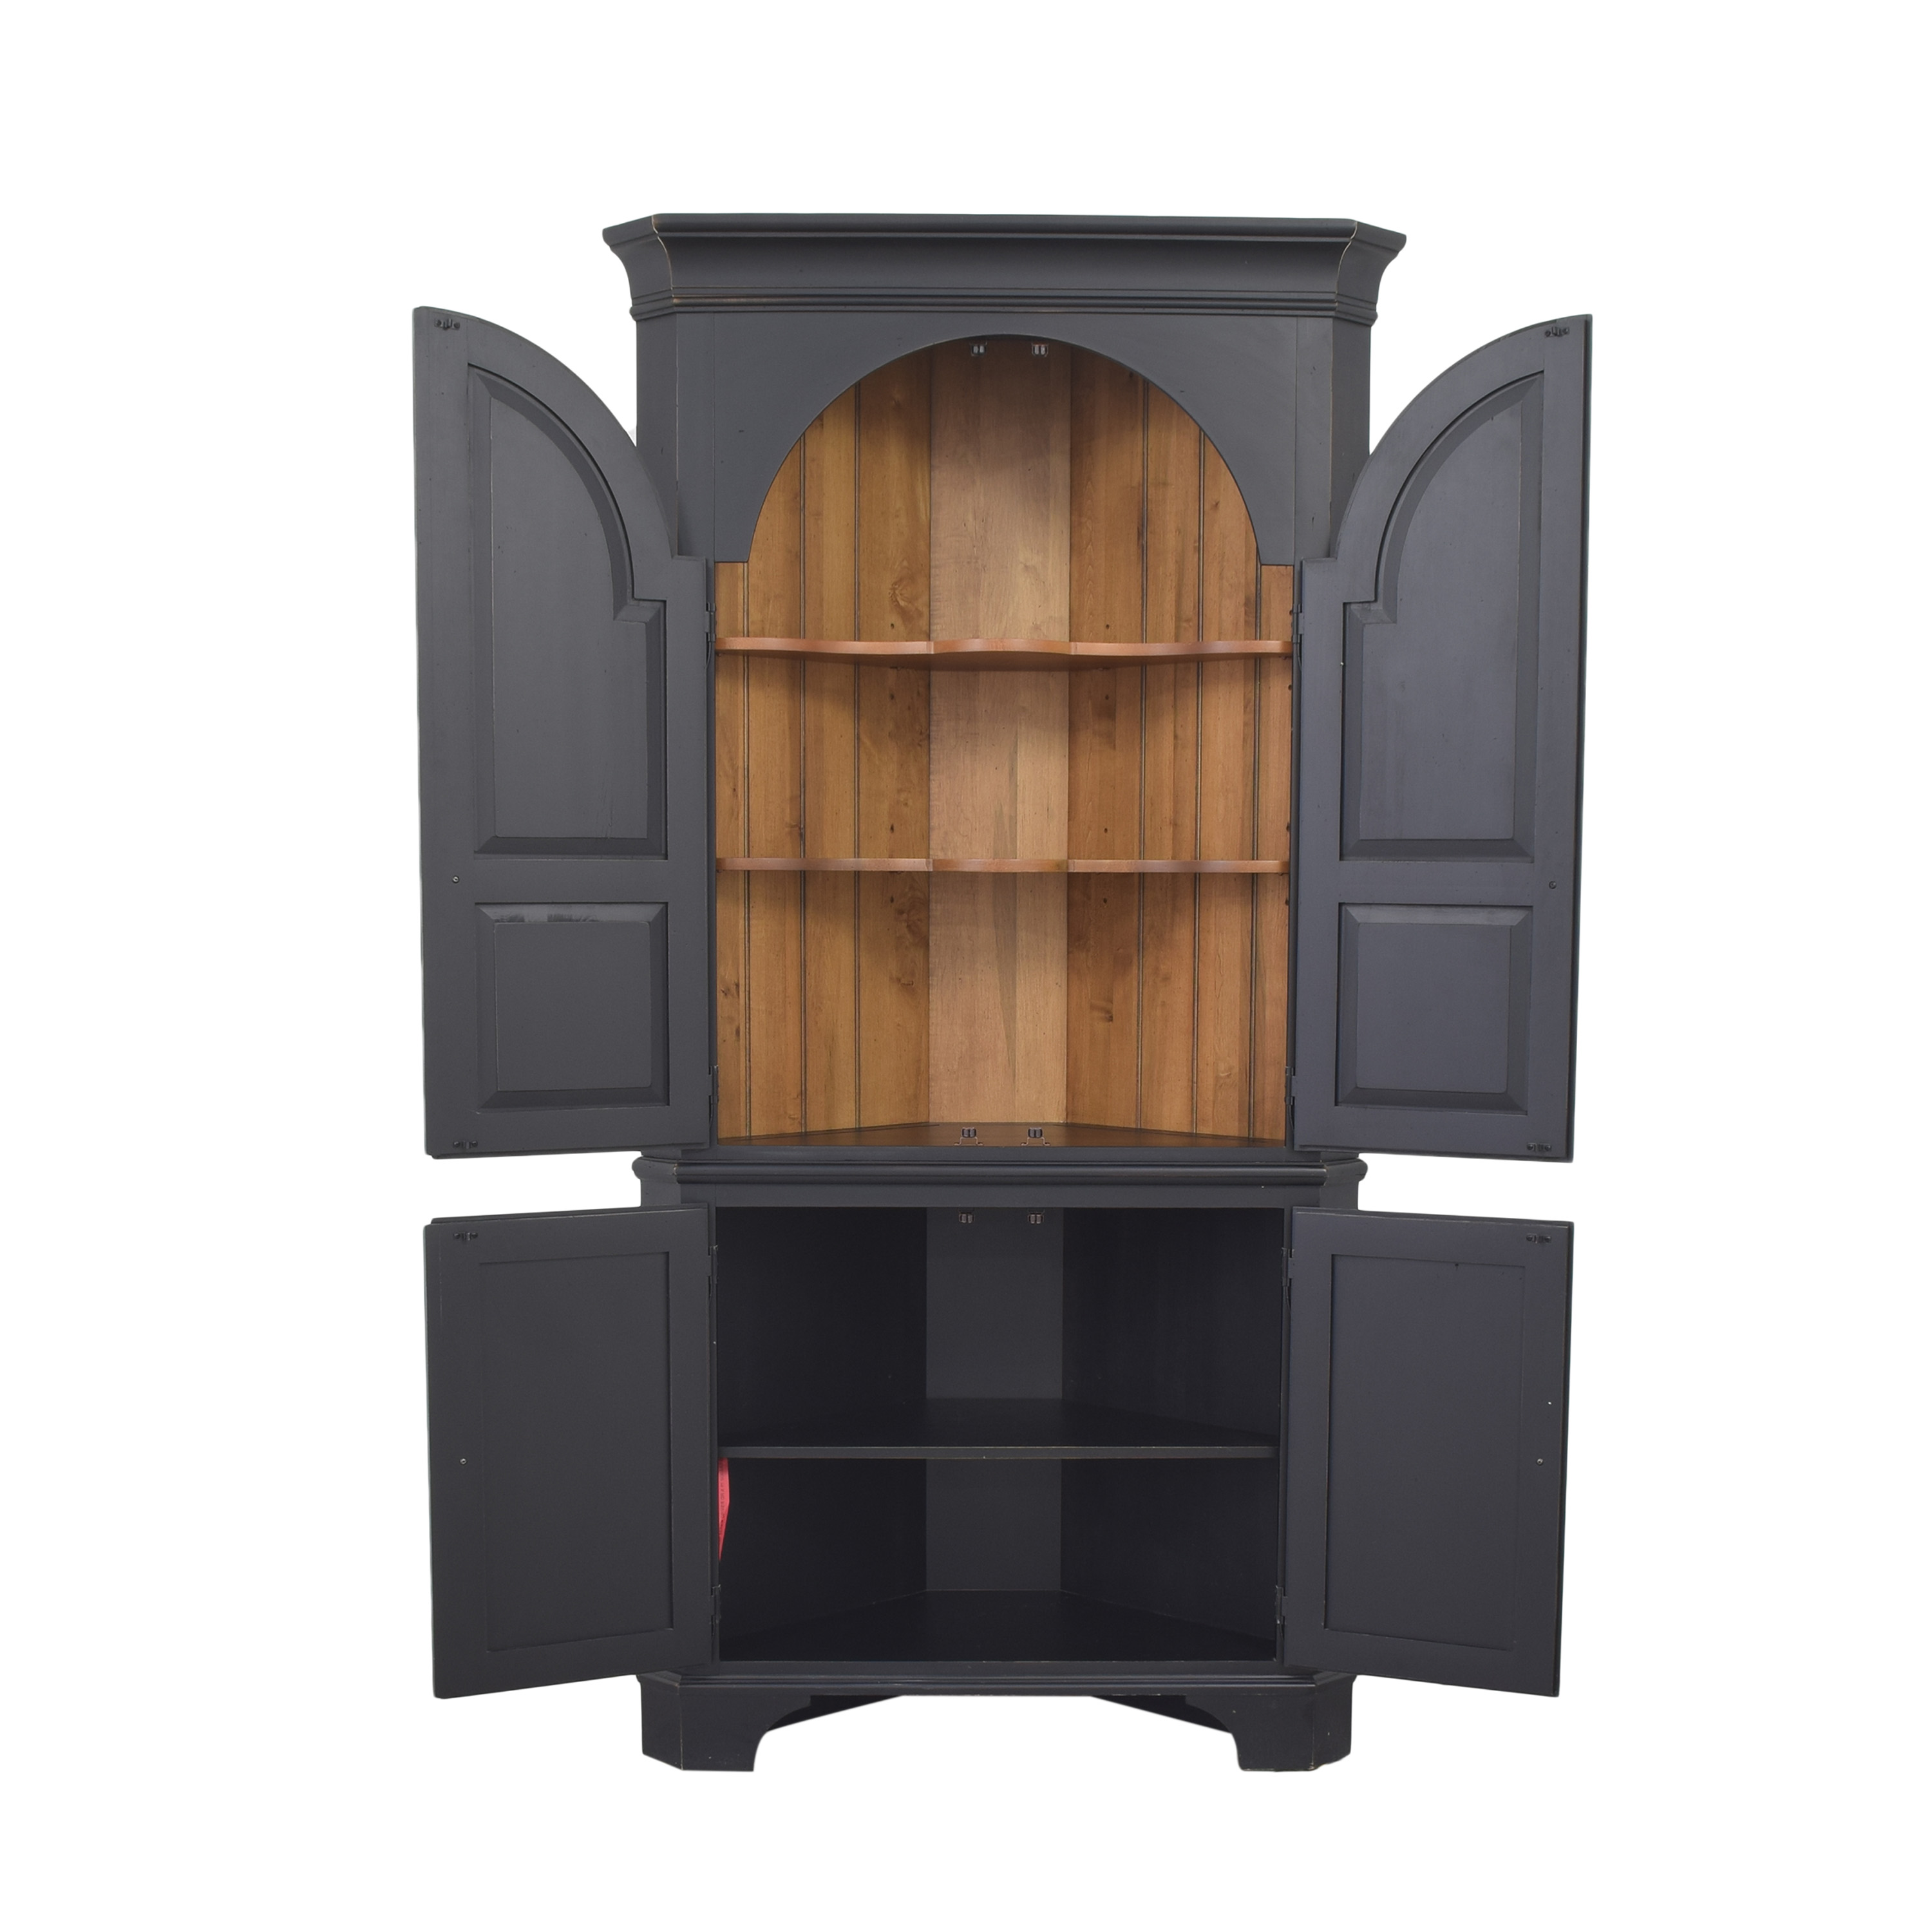 Ethan Allen Ethan Allen New Country Collection Corner Cabinet coupon